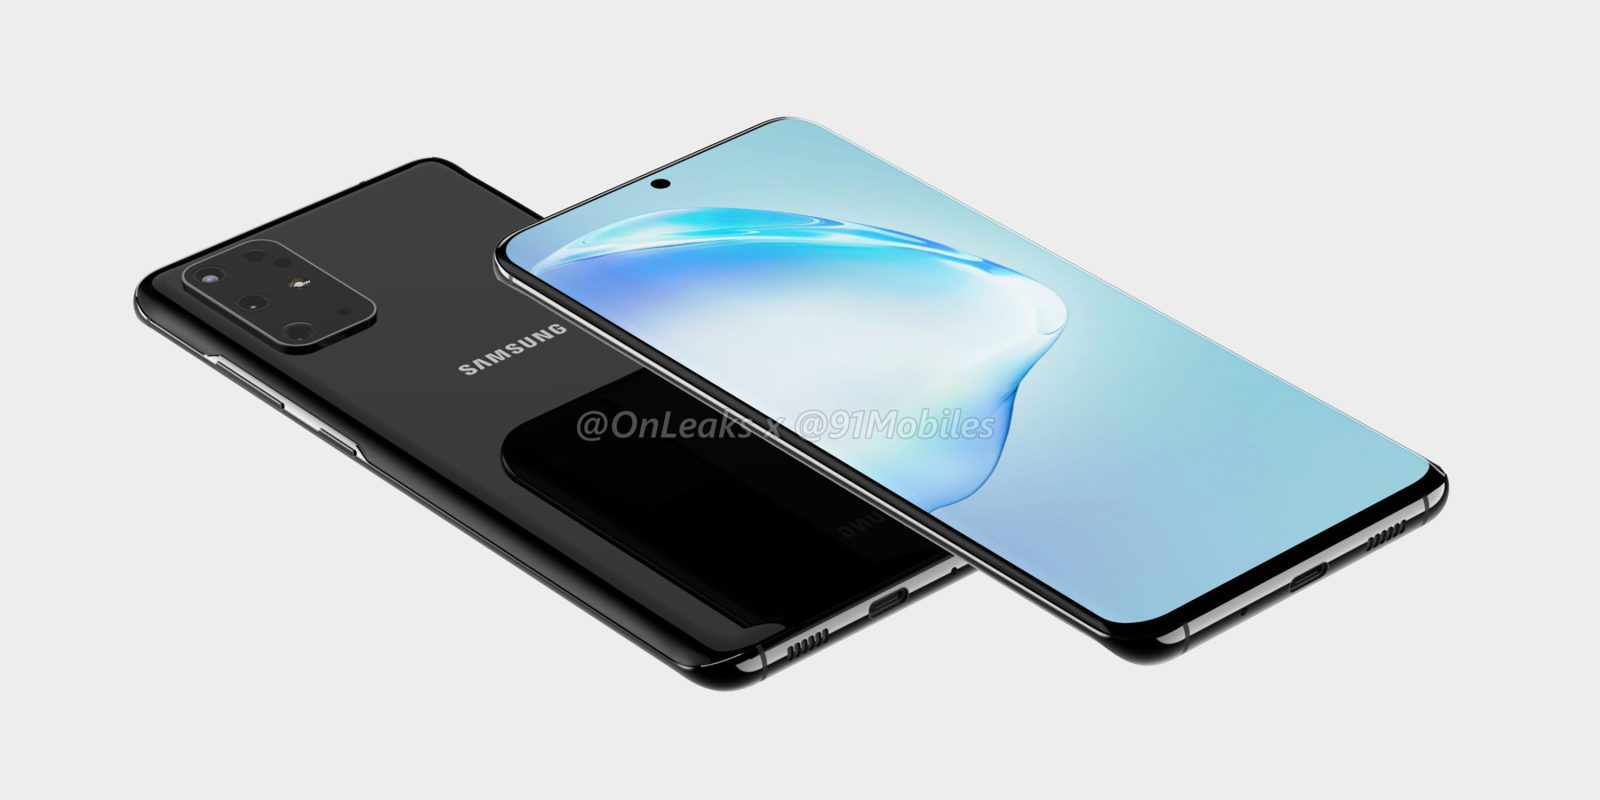 Samsung Galaxy S11 tipped to support 8K video recording w/ Snapdragon 865